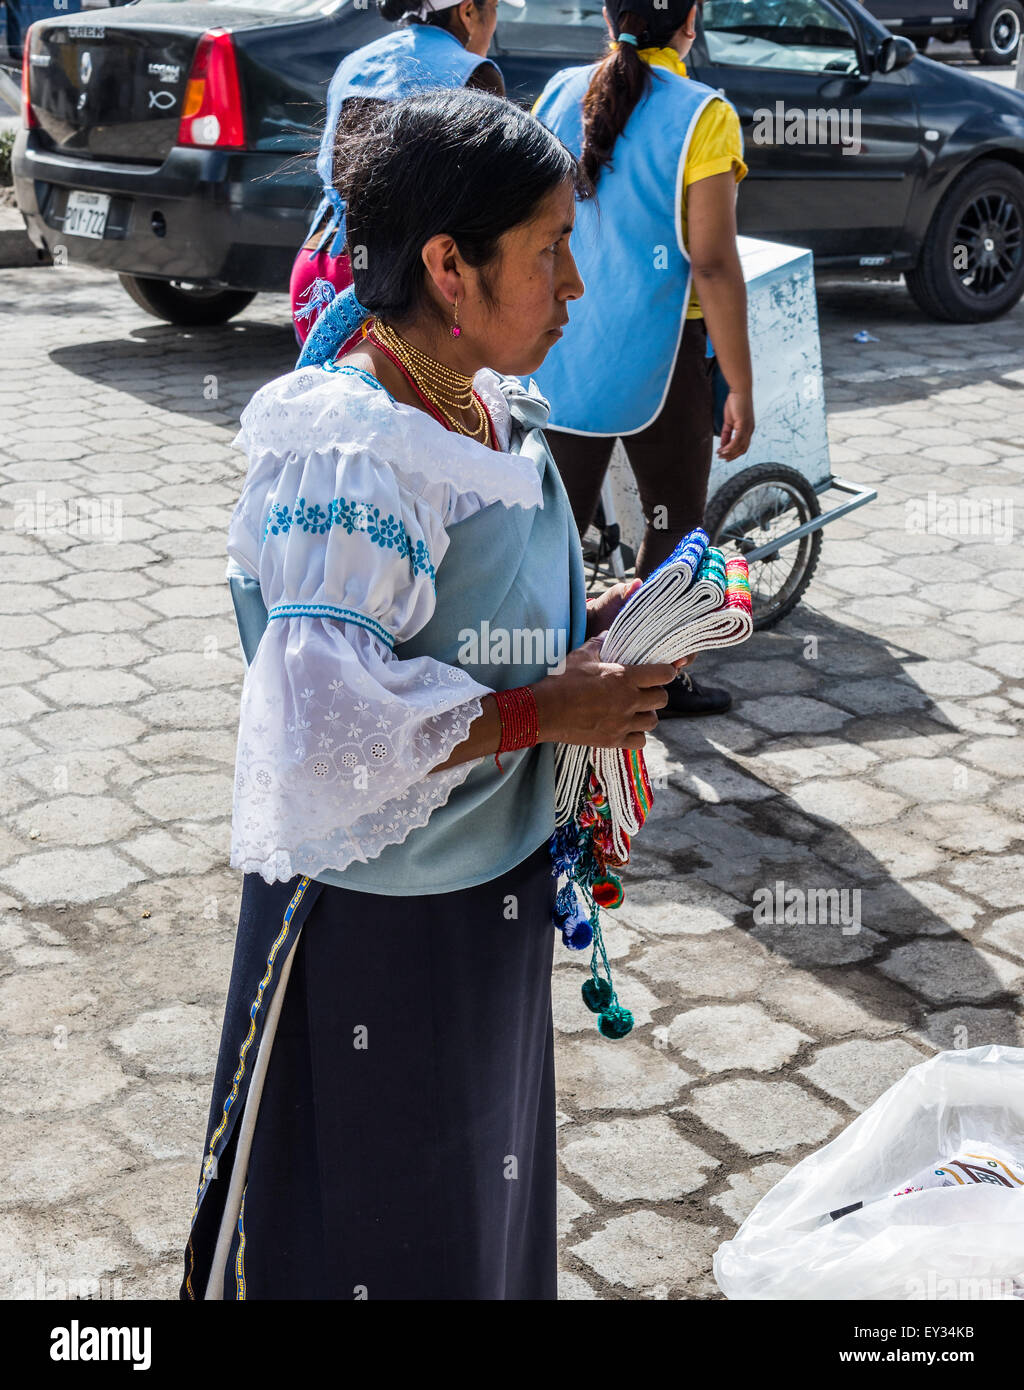 A young woman selling traditional embroiled belts at local market. Otavalo, Ecuador. - Stock Image